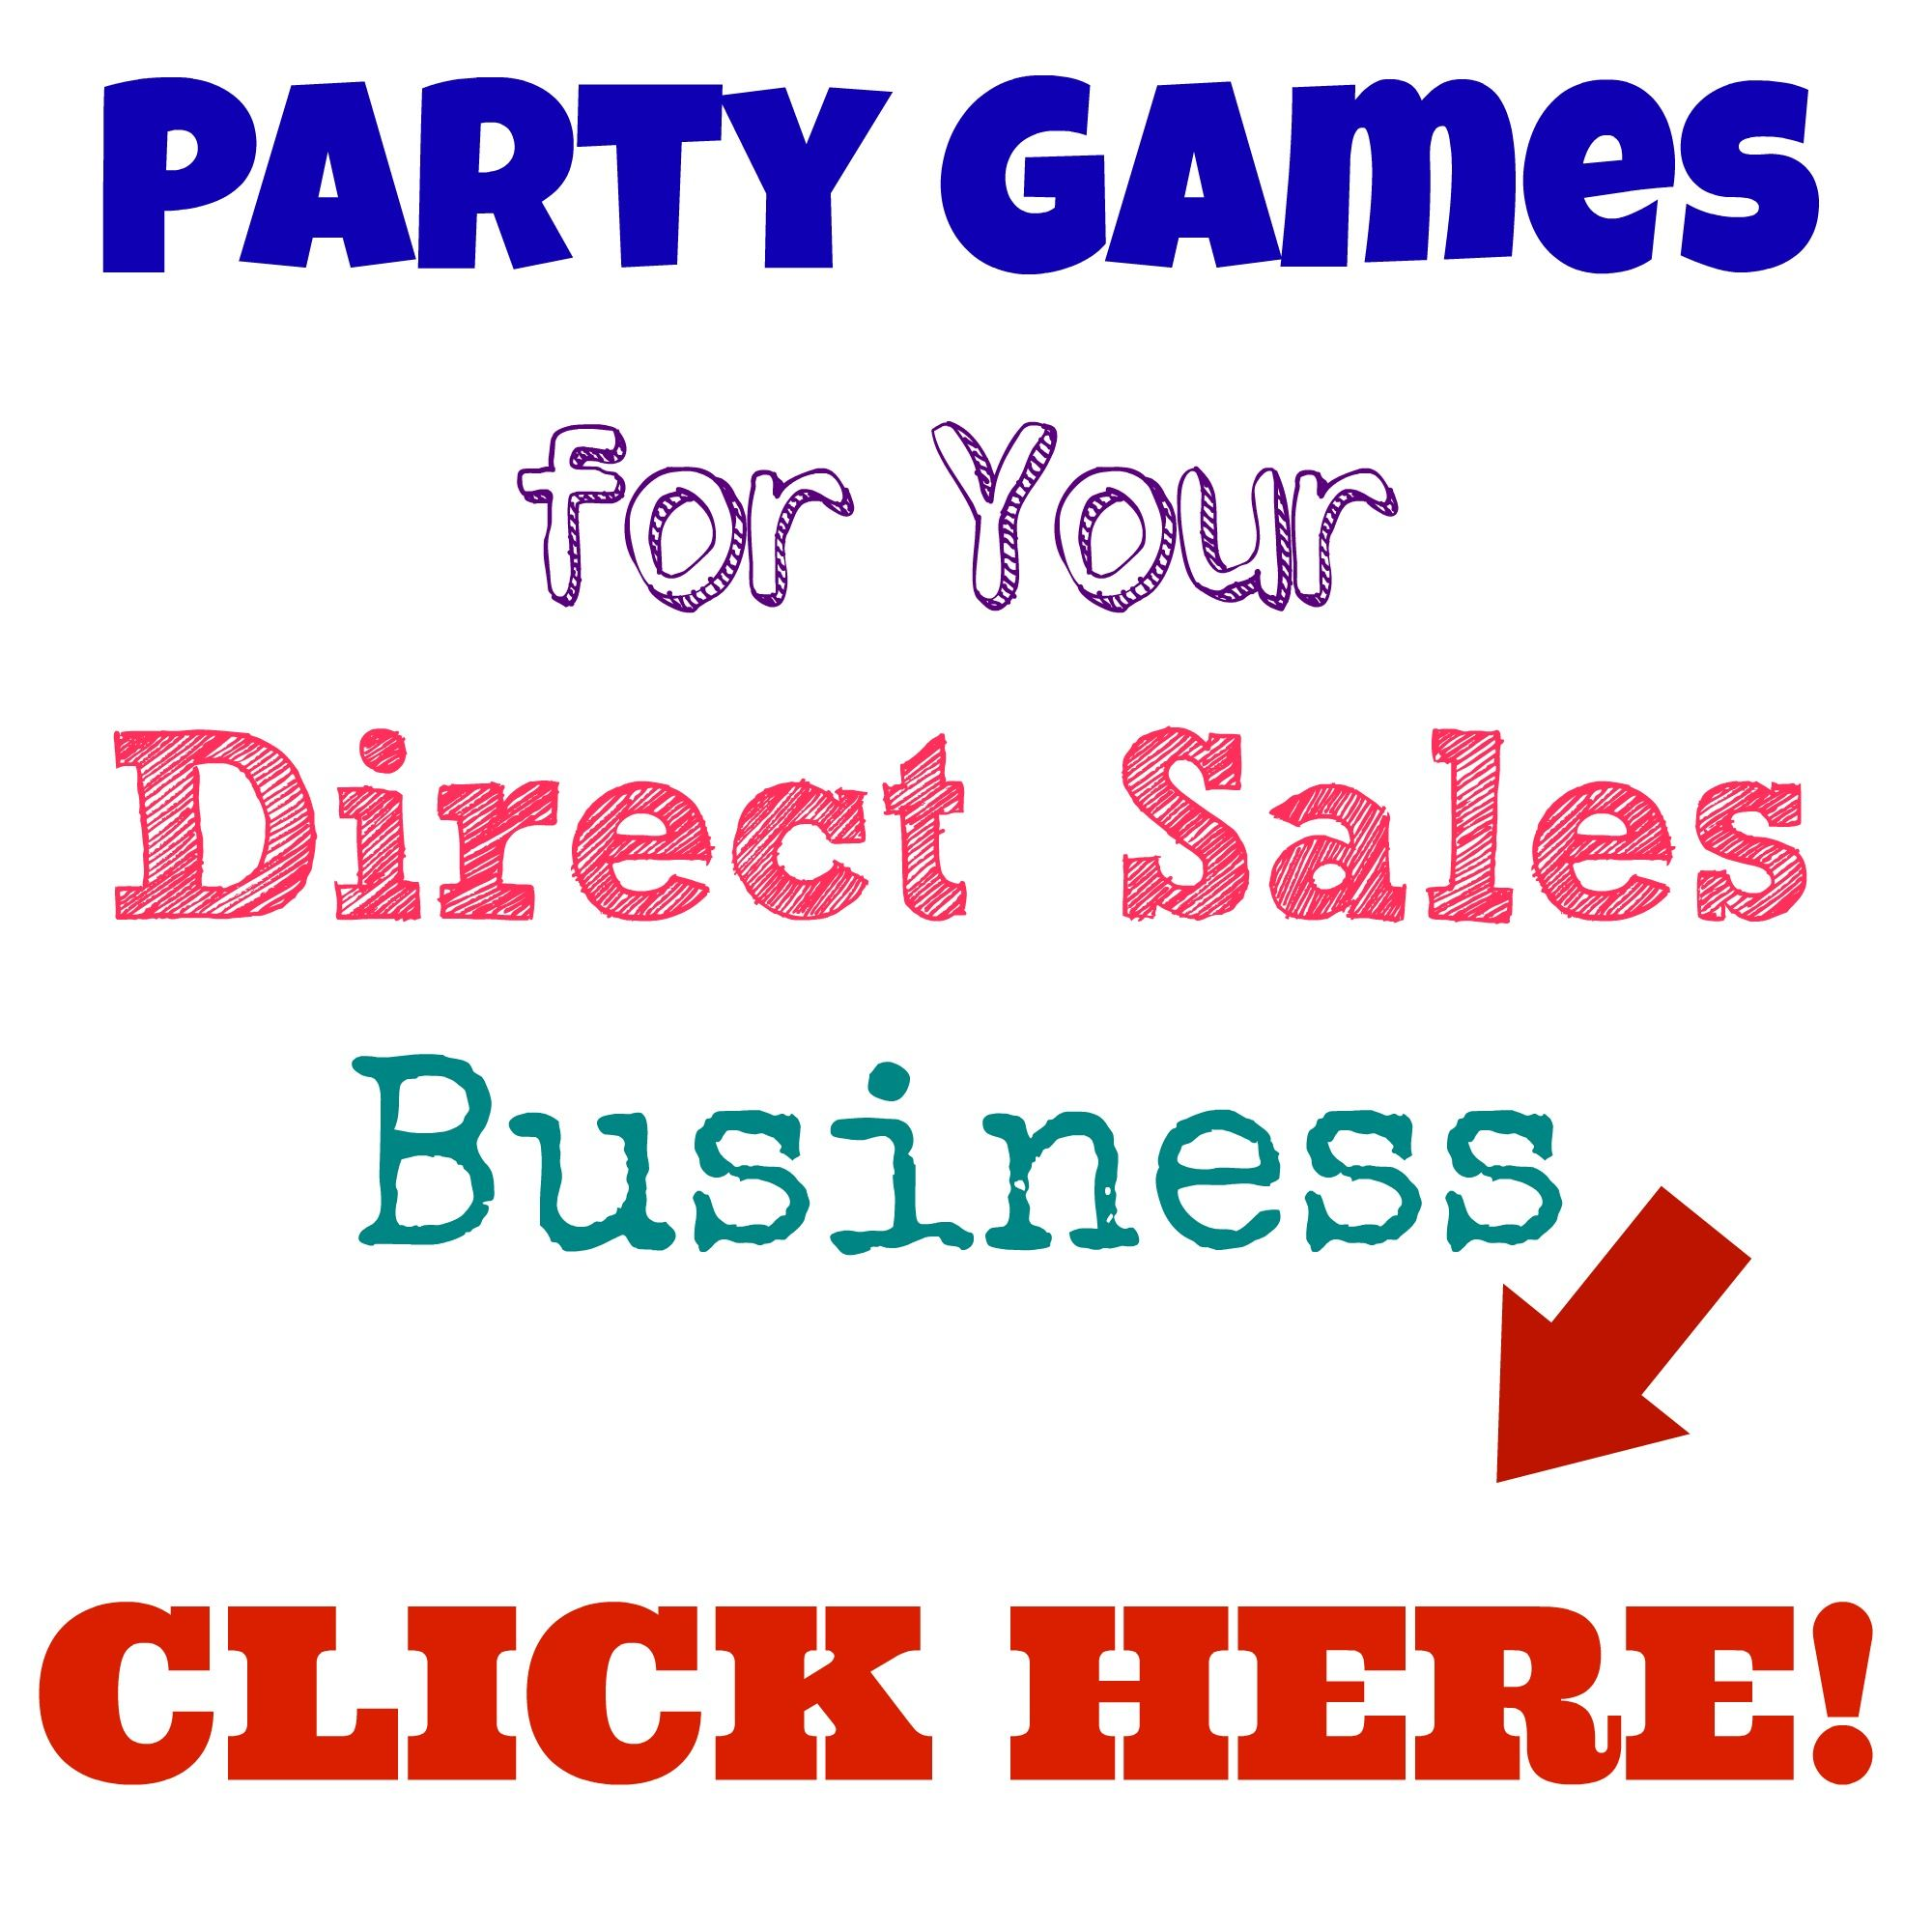 Party Games for Your Direct Sales Business Party games Gaming